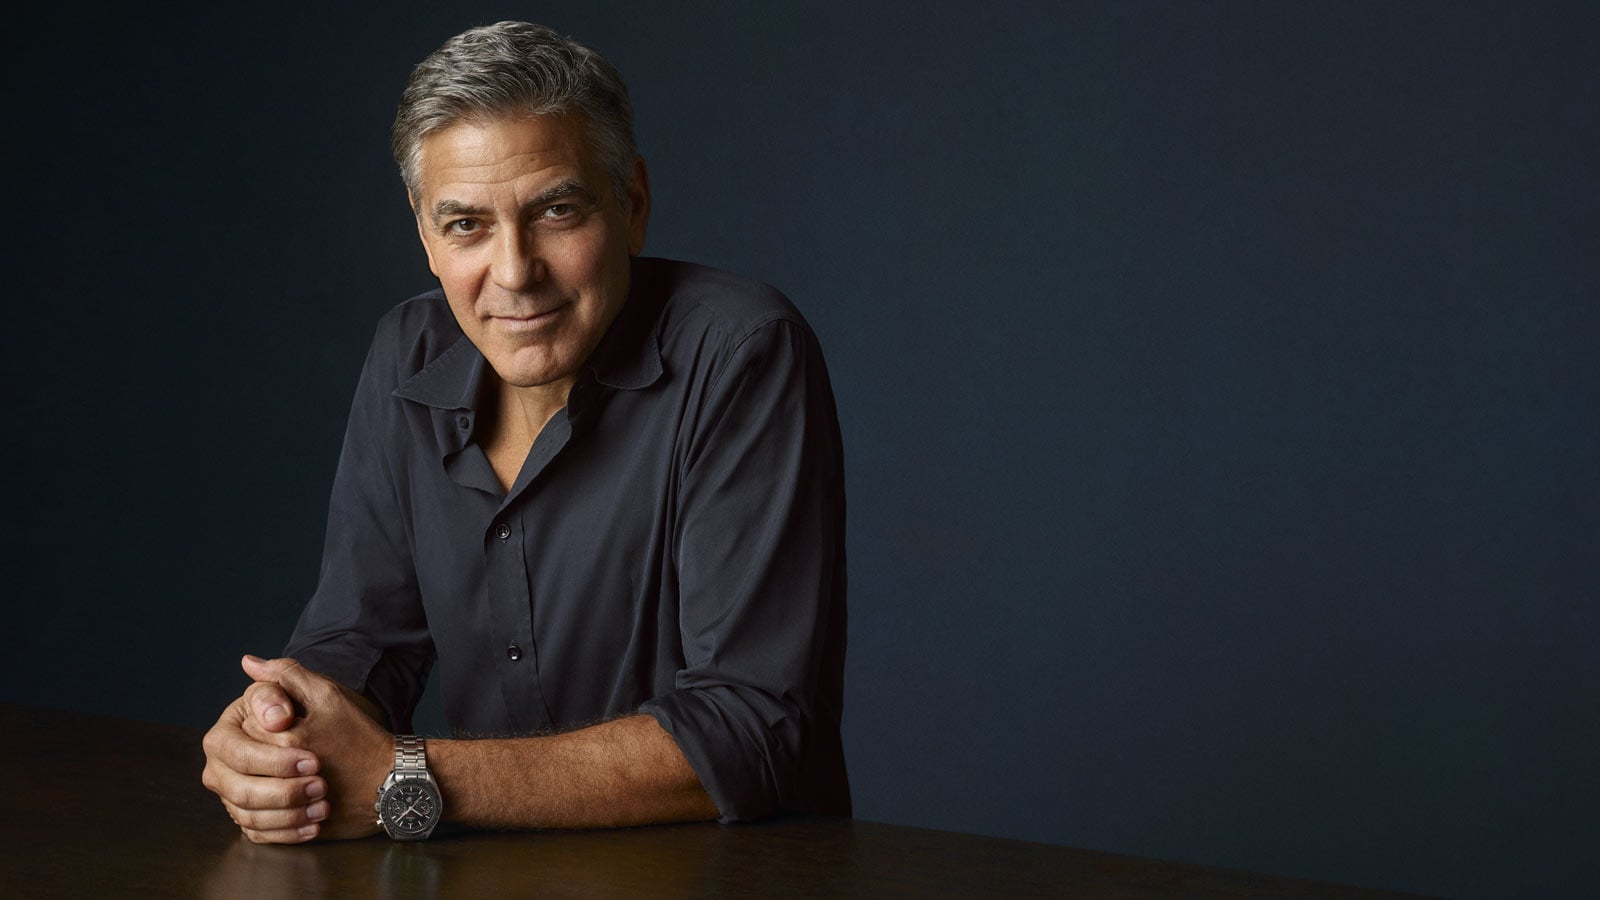 George Clooney looking at the camera while having his hands resting on a table